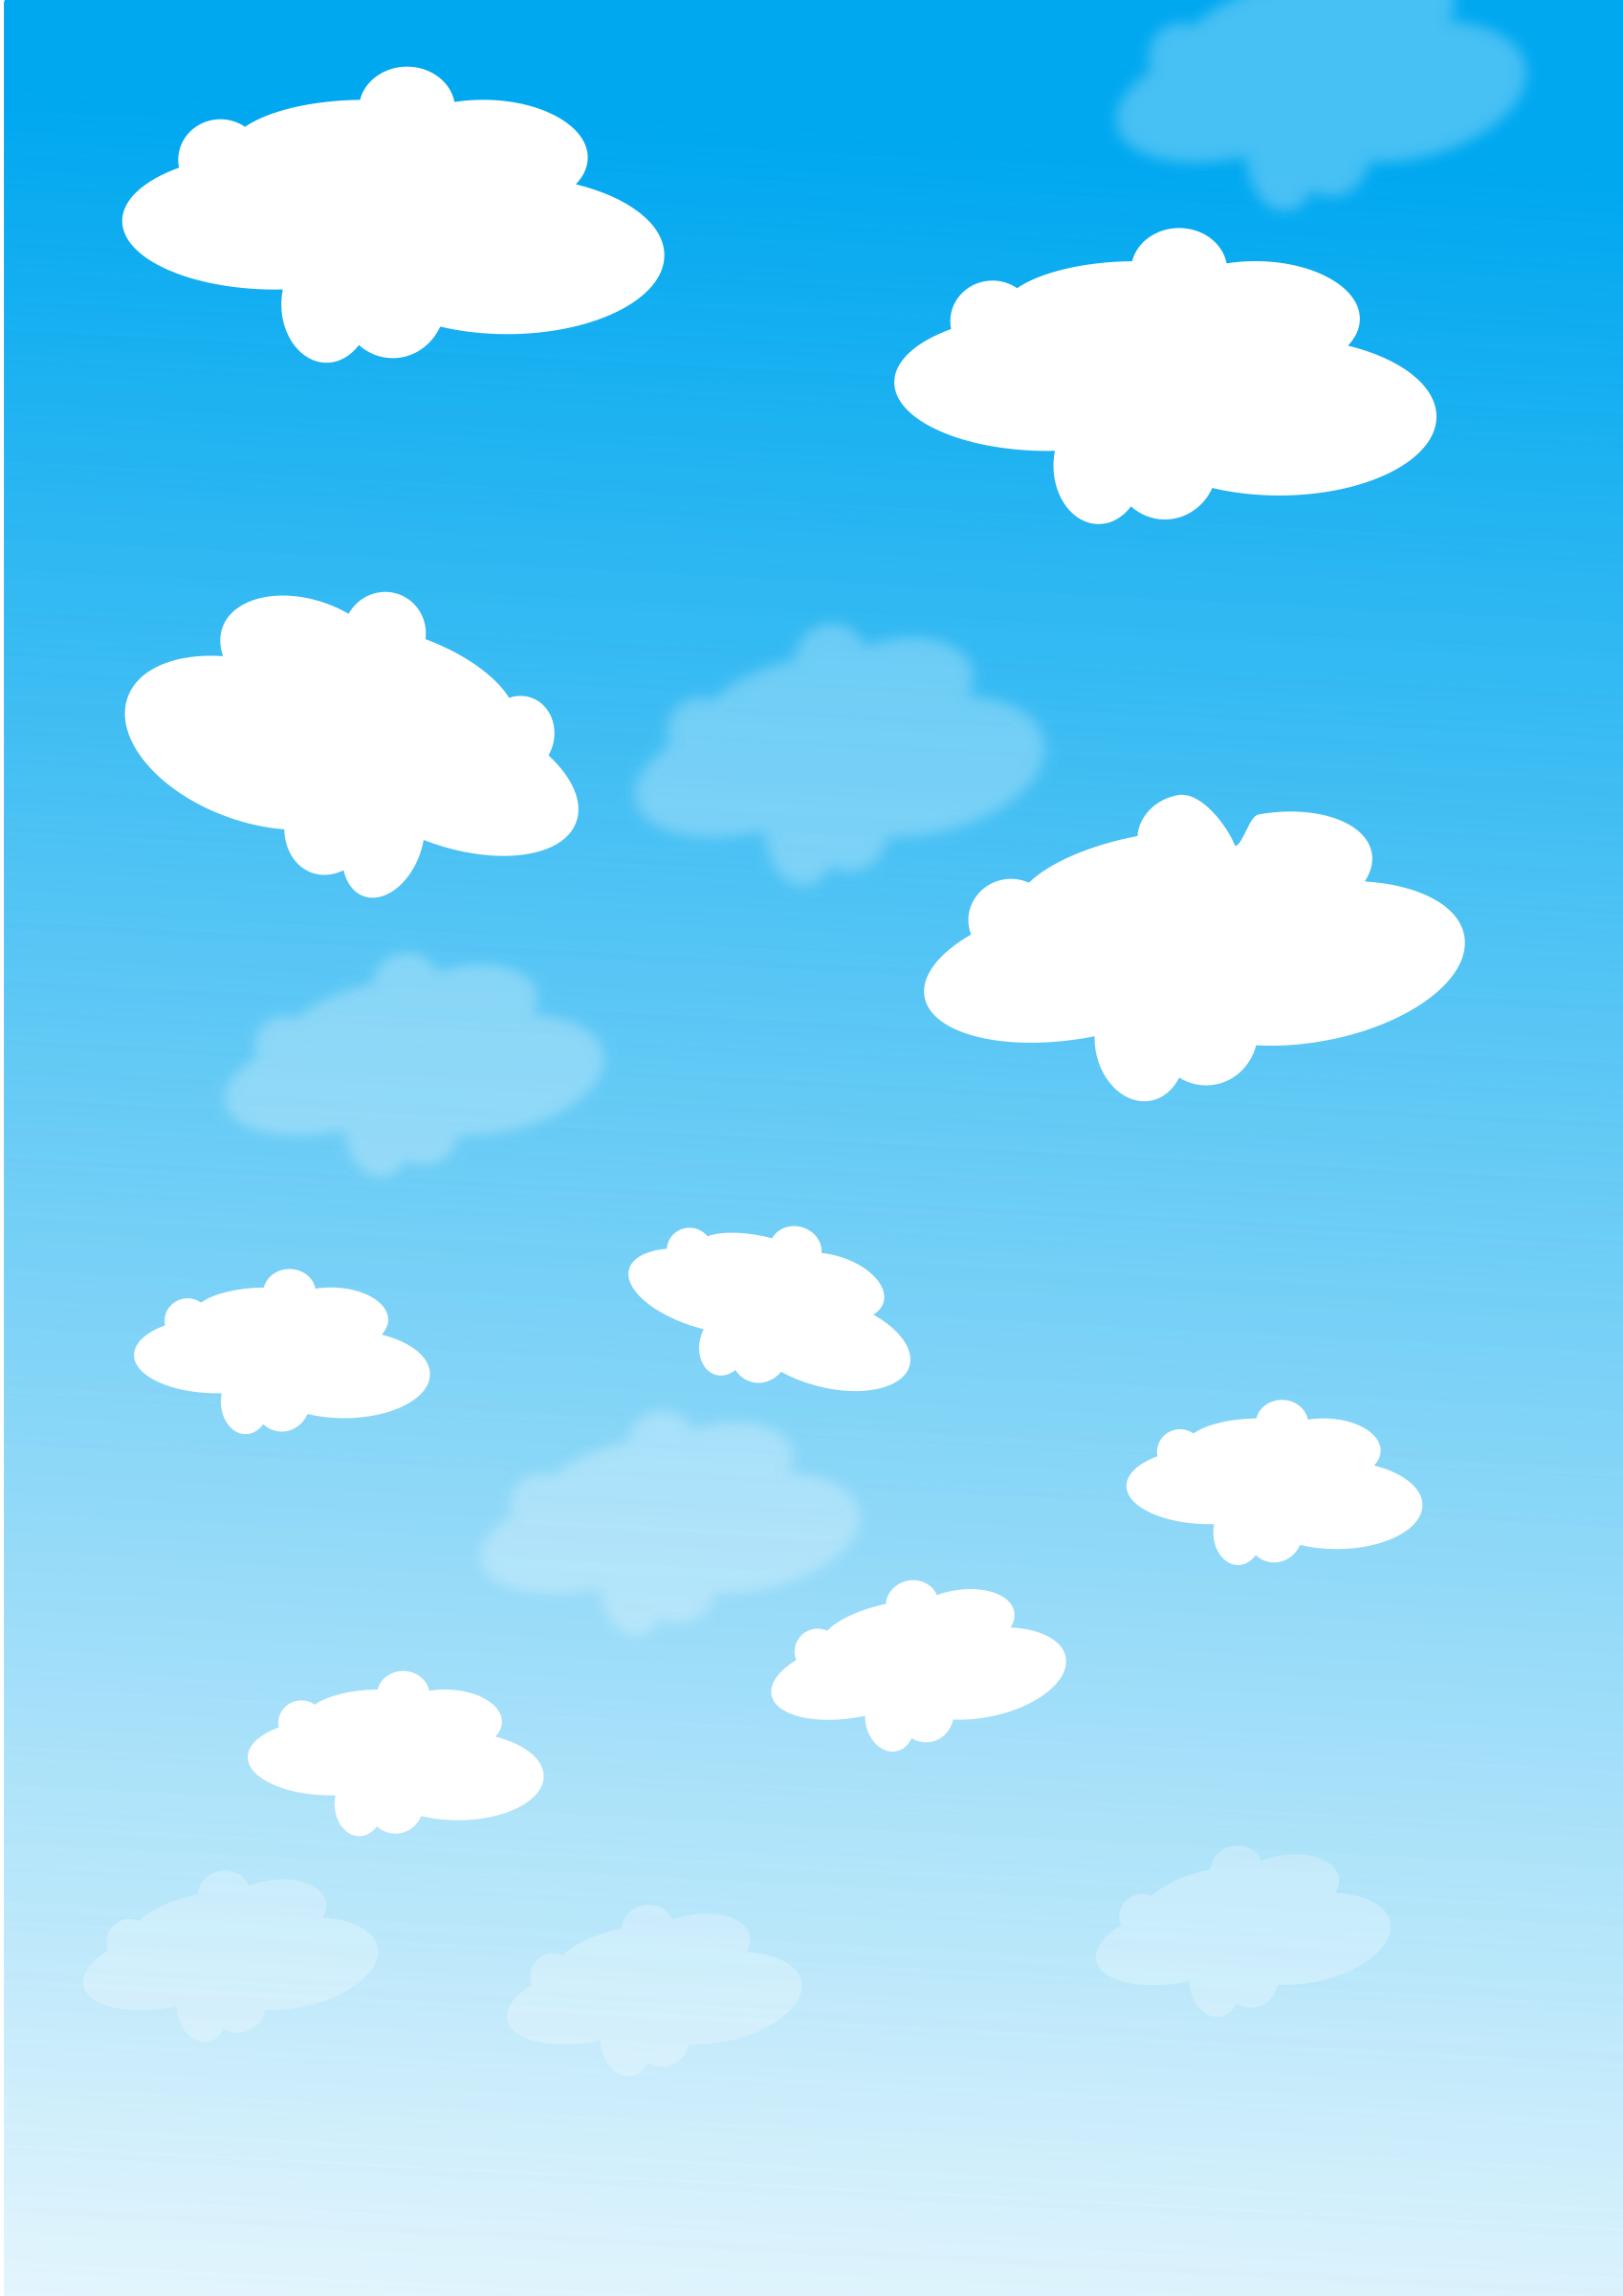 Sky With Clouds Clipart.